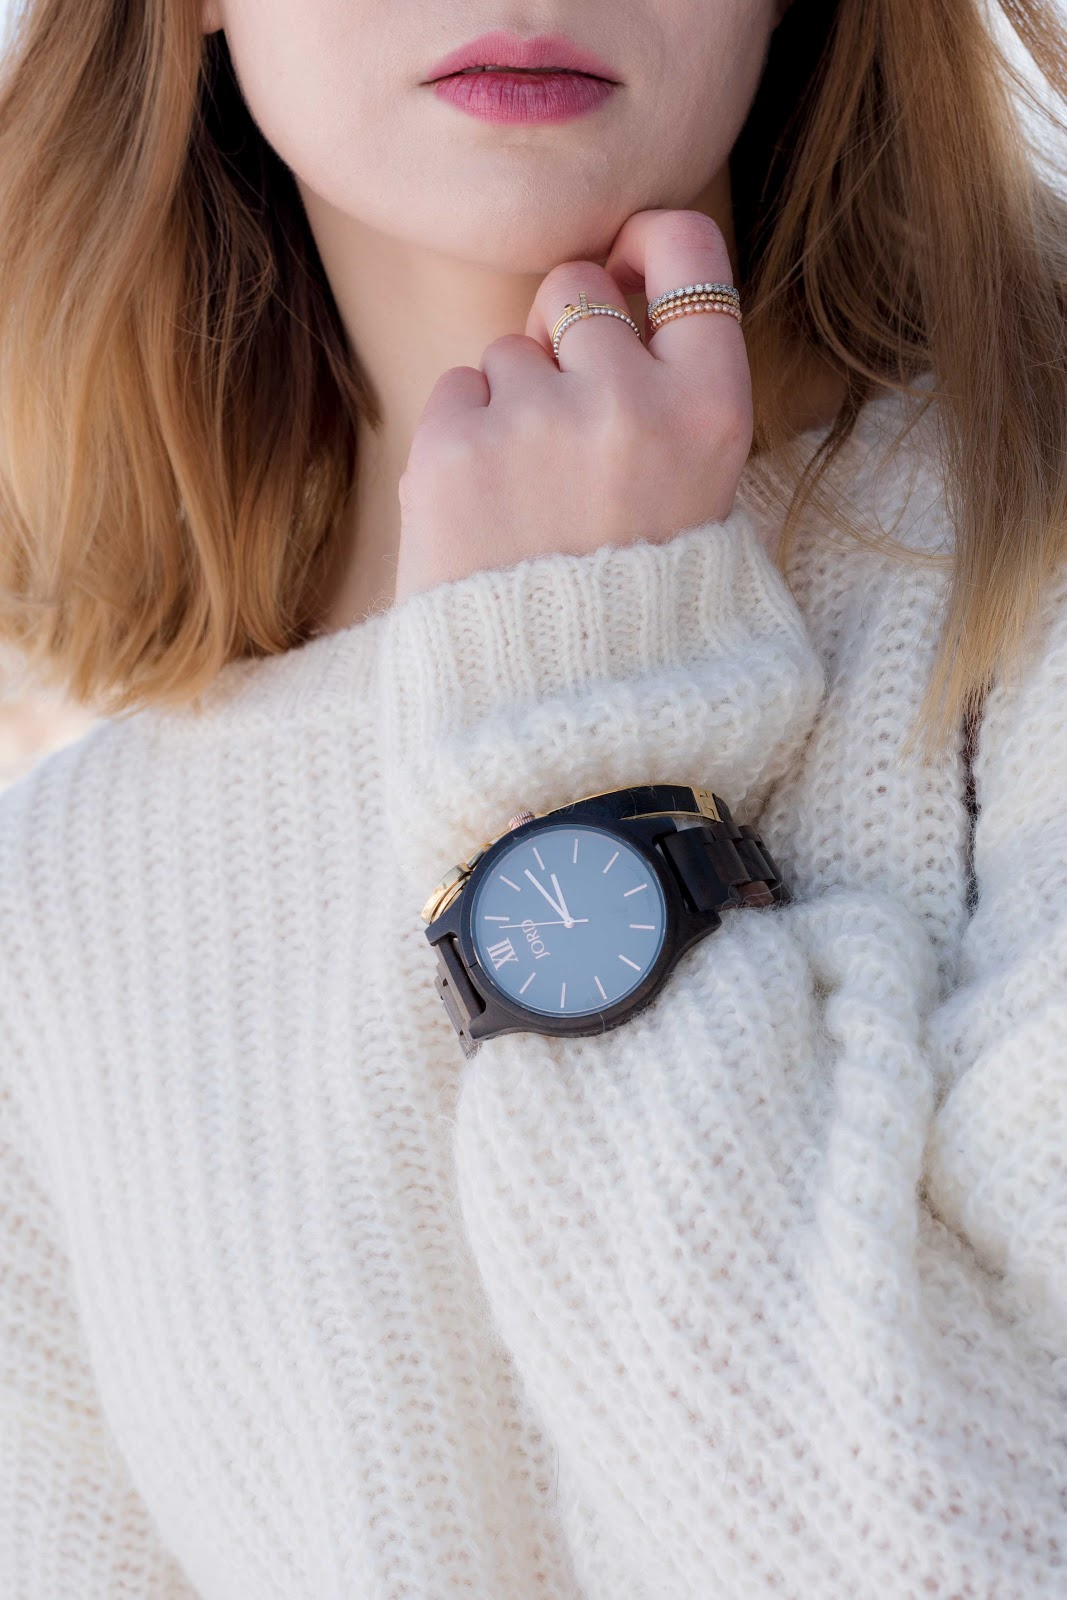 Jord watches, wood watches, uniqlo, minimalistic outfit, winter fashion, culottes